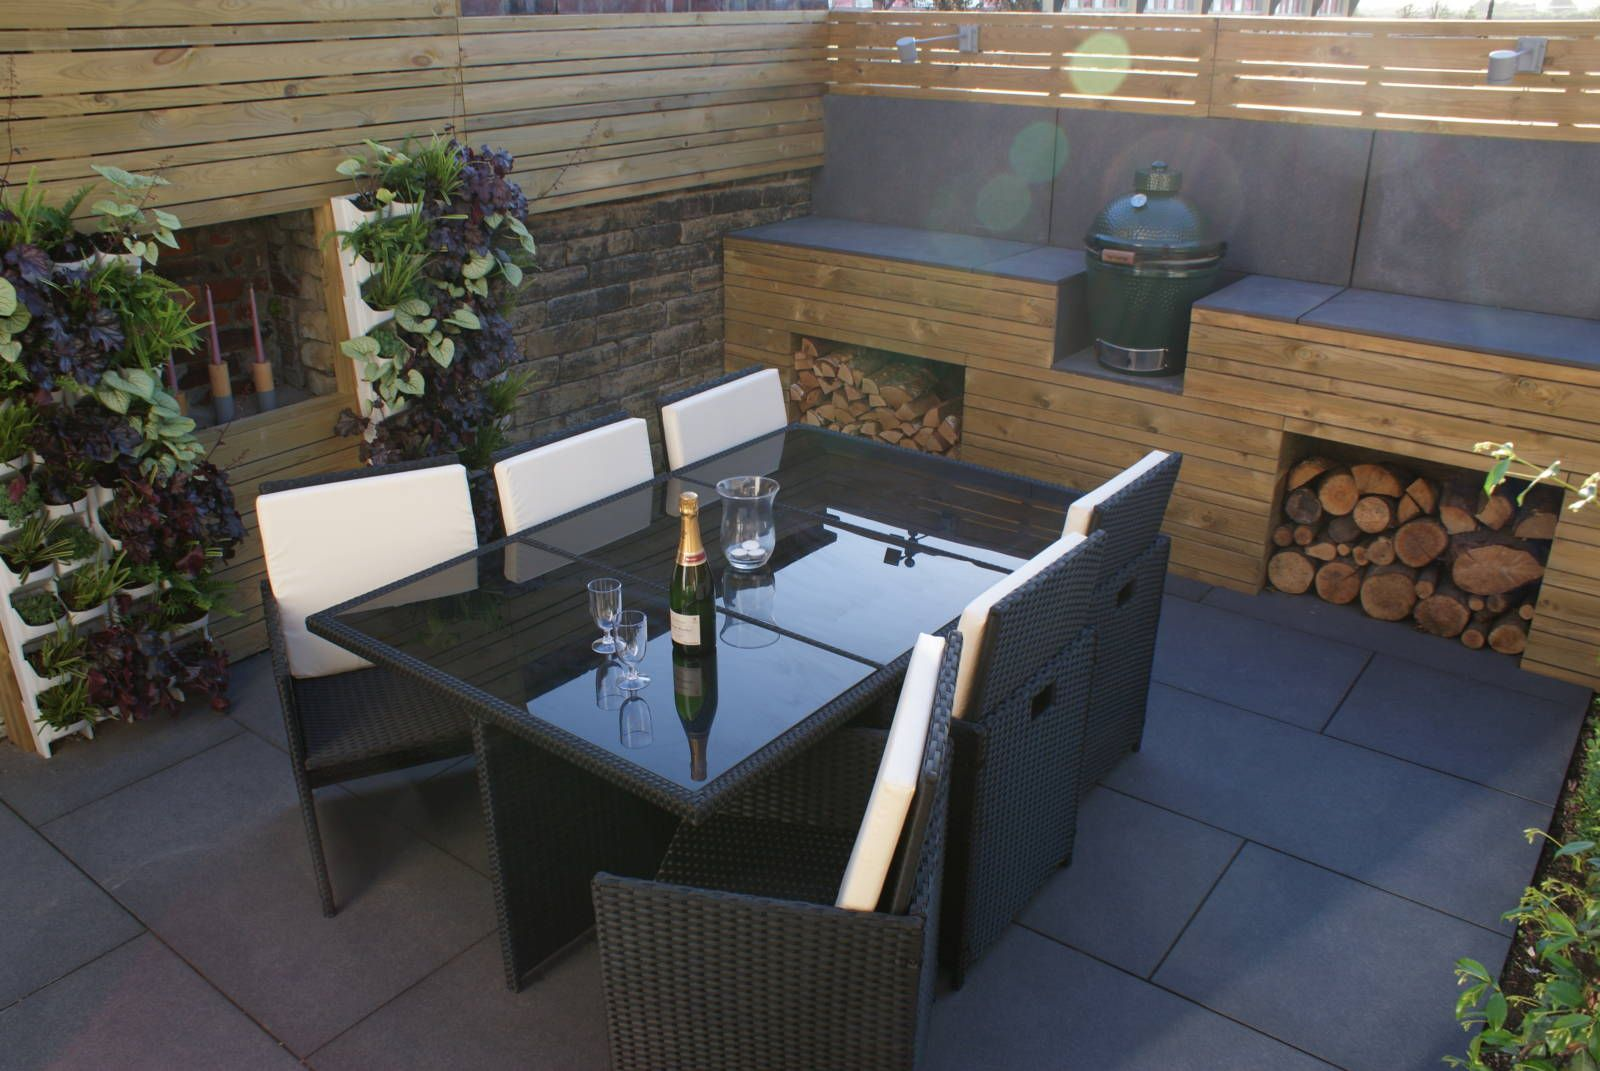 Inside to Outdoor Living Space Rochdale, Greater Manchester on Outdoor Living Space Company id=52746